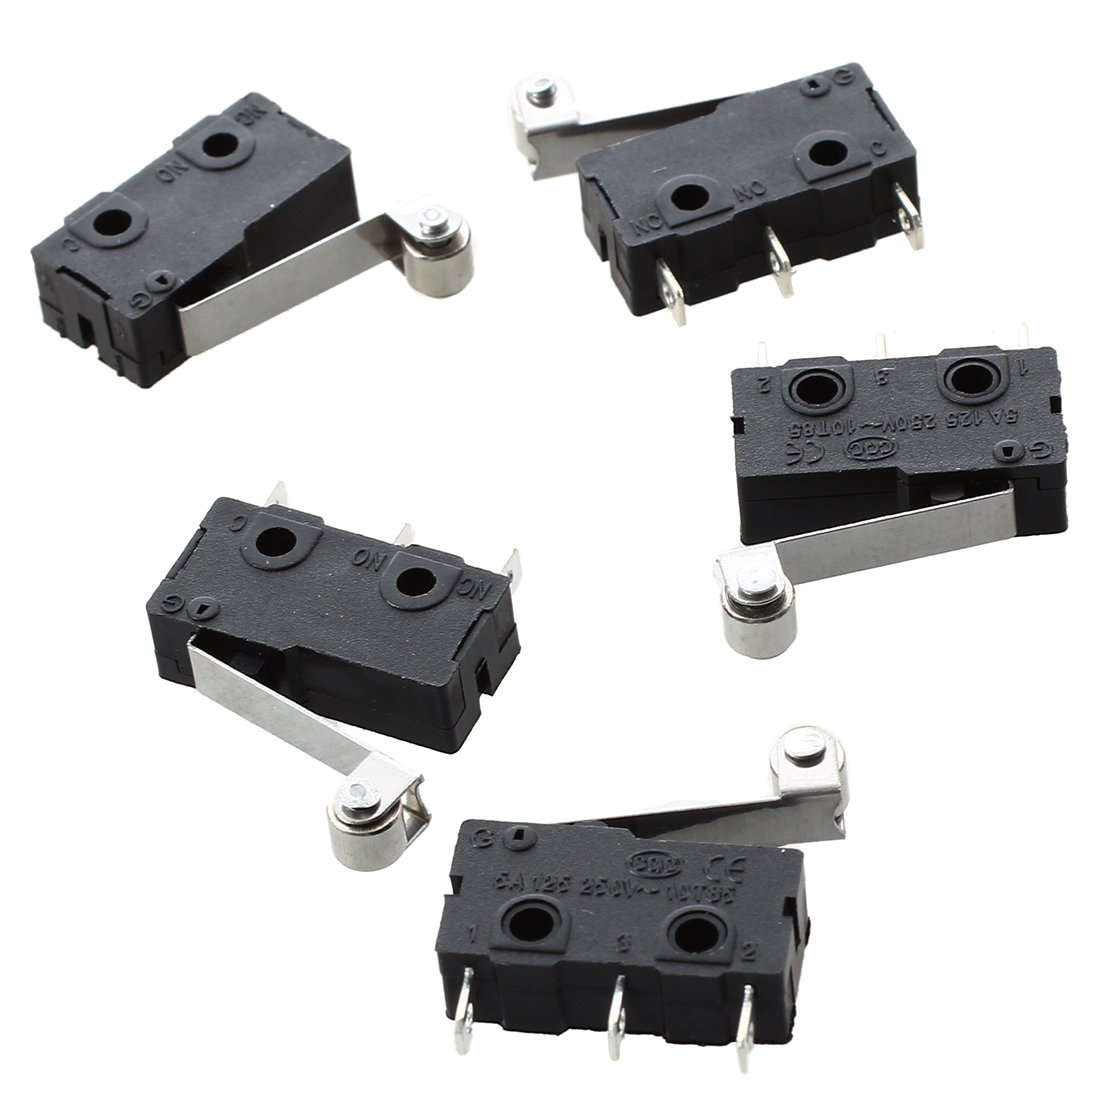 Micro Switch - SODIAL(R) 5 Pcs Micro Limit Switch Roller Arm Subminiature SPDT Snap Action Switch Black